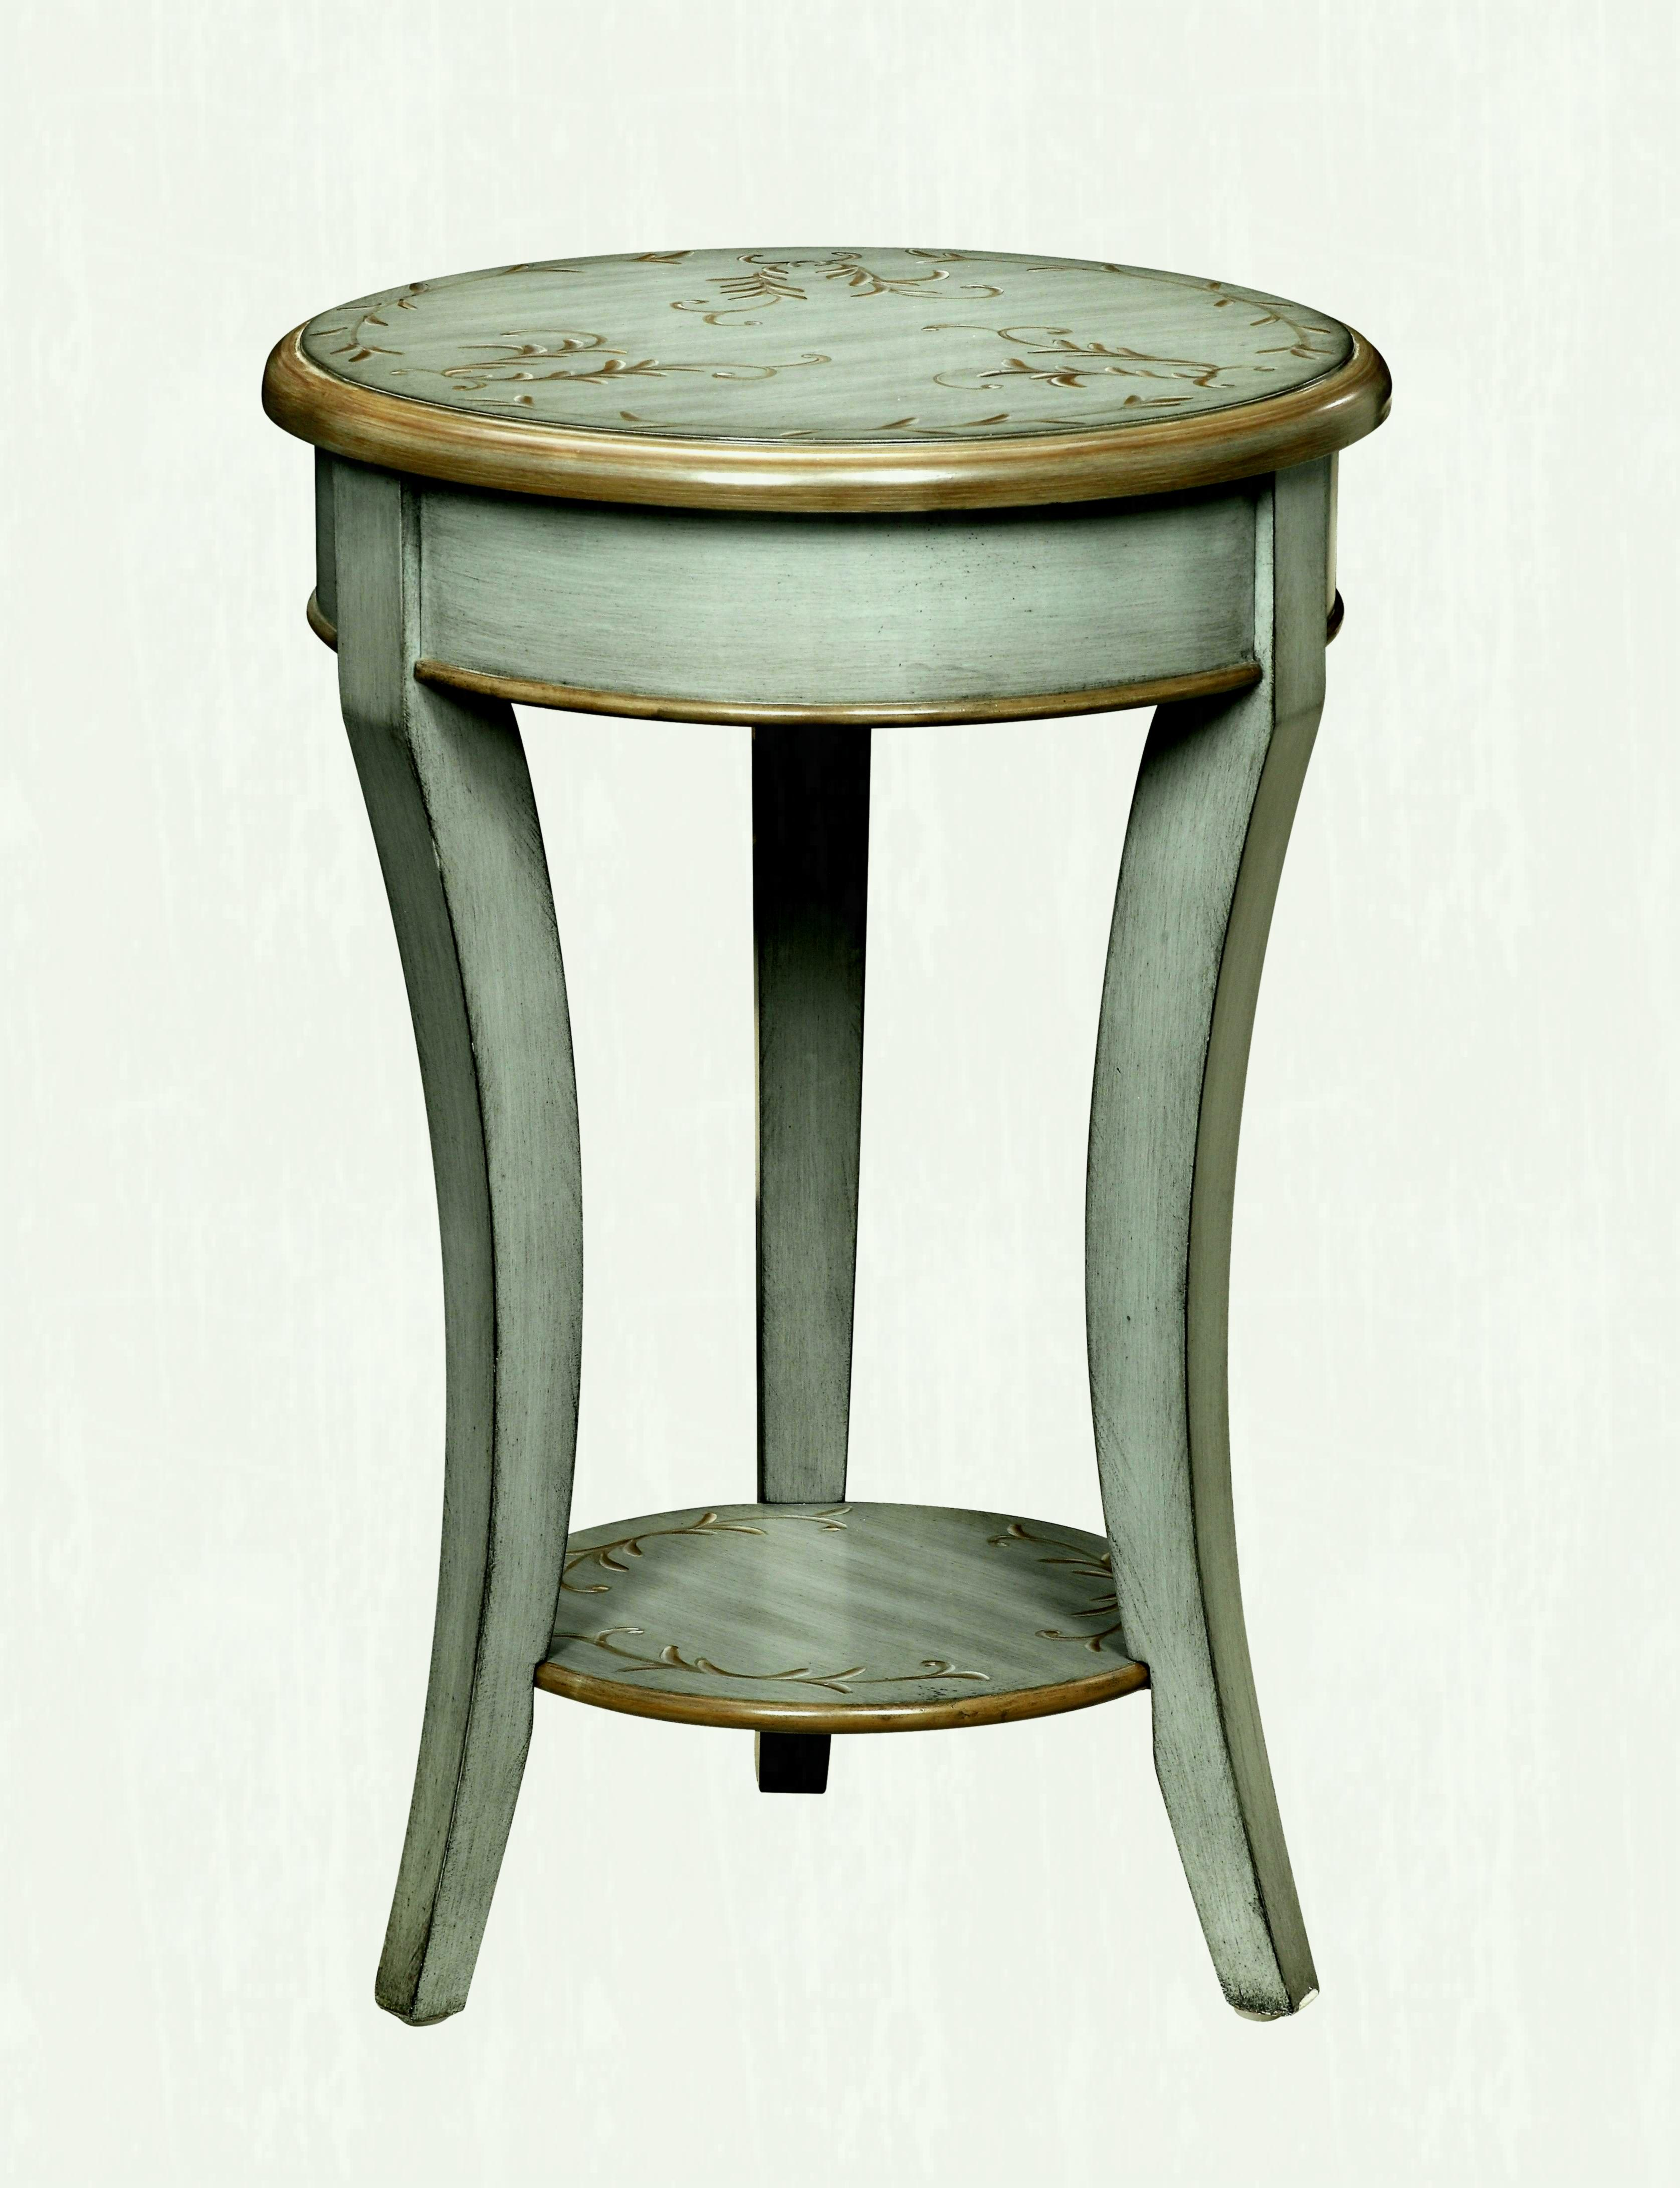 small round accent table for the bedroom lovely wood metal furniture dresser full marble coffee mid century lamp target windham cabinet lucite base bronze bedside french bistro